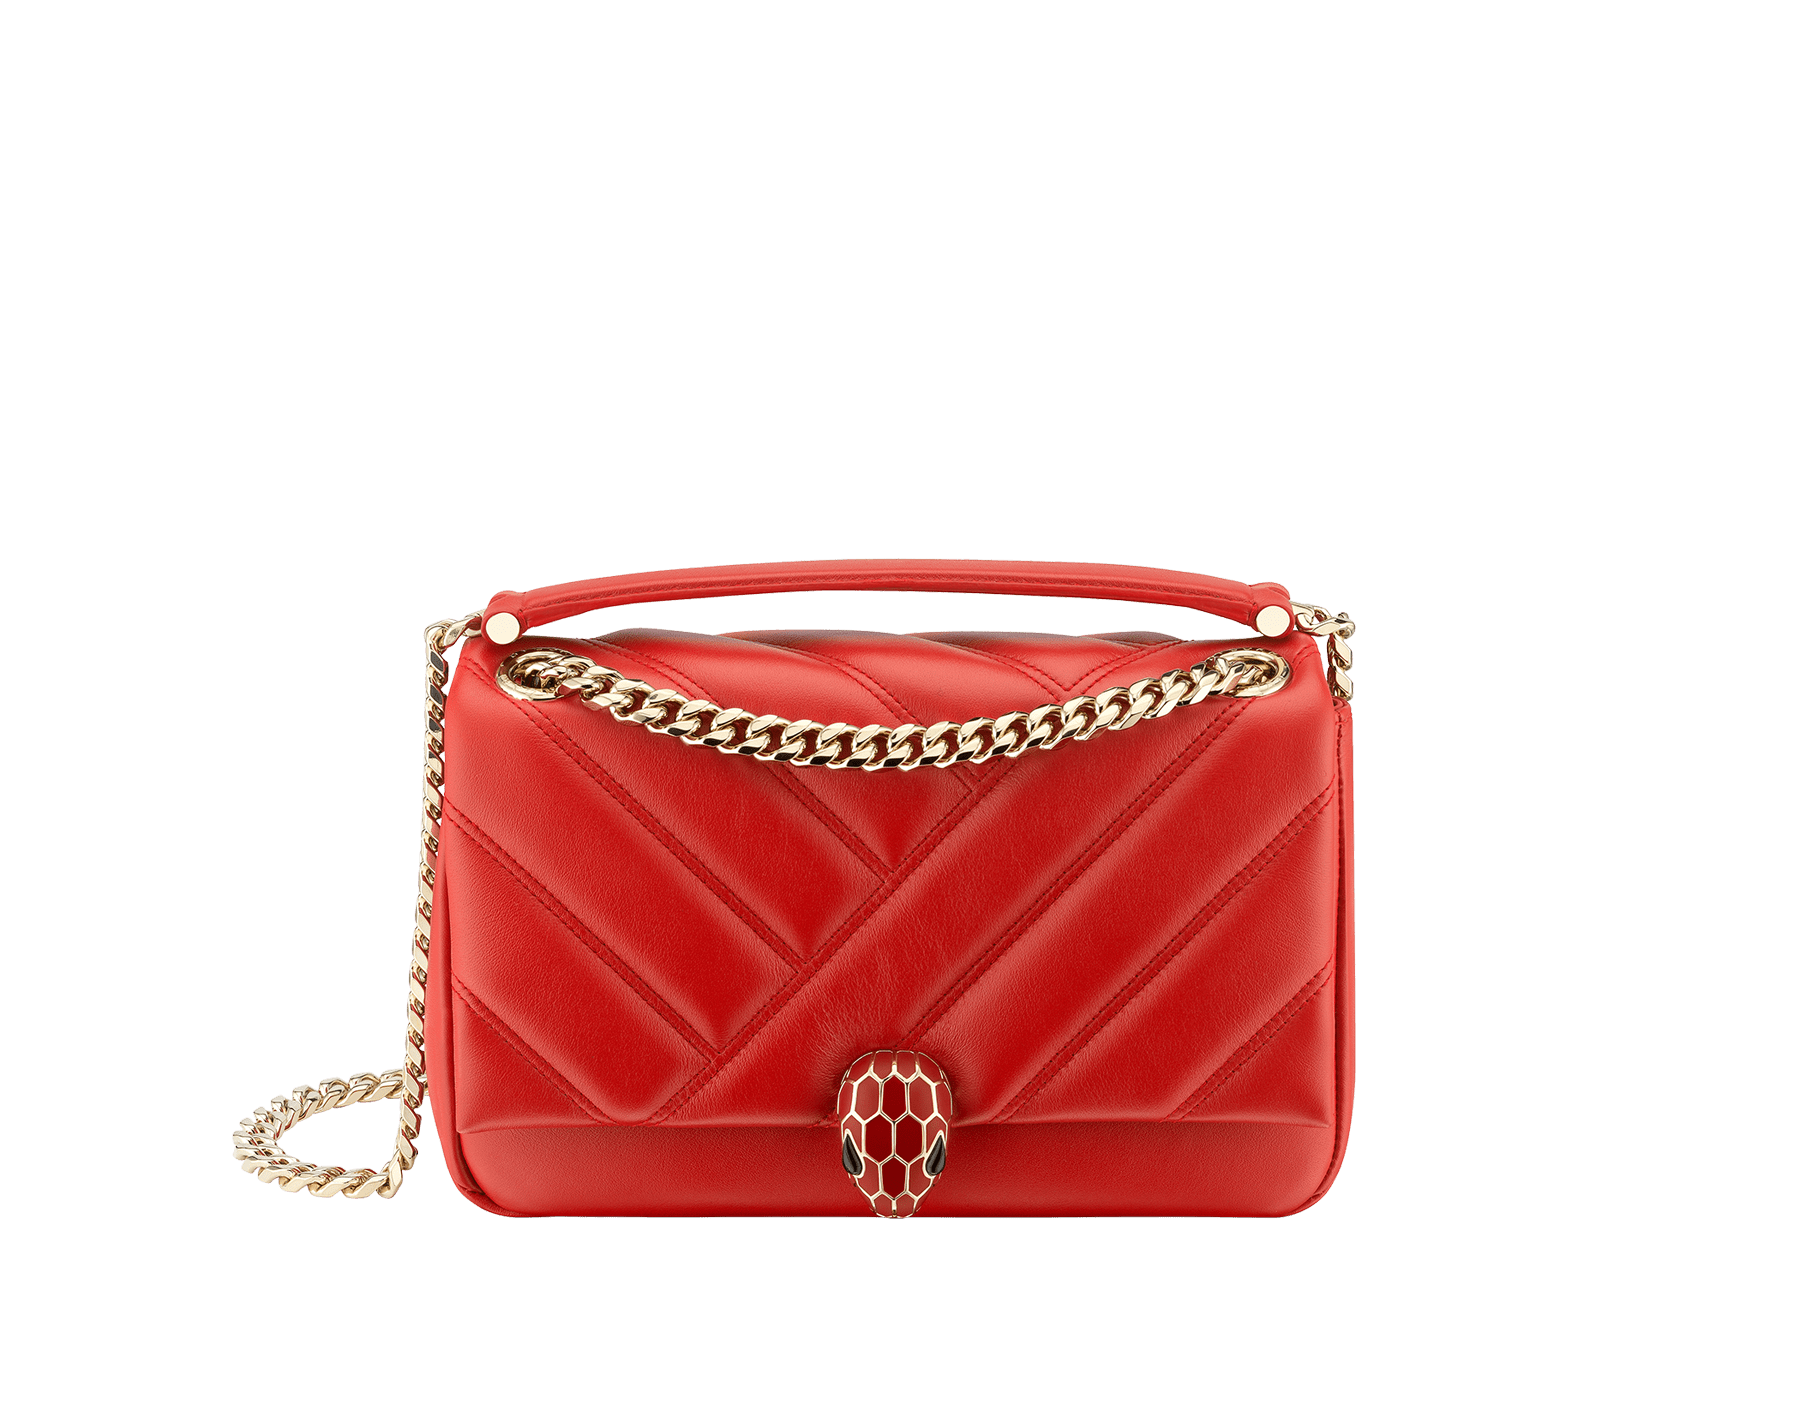 Serpenti Cabochon shoulder bag in soft matelassè roman garnet nappa leather, with a graphic motif, and roman garnet calf leather. Brass light gold plated tempting snake head closure in matte roman garnet and shiny roman garnet enamel and black onyx eyes. 981-NSM image 1